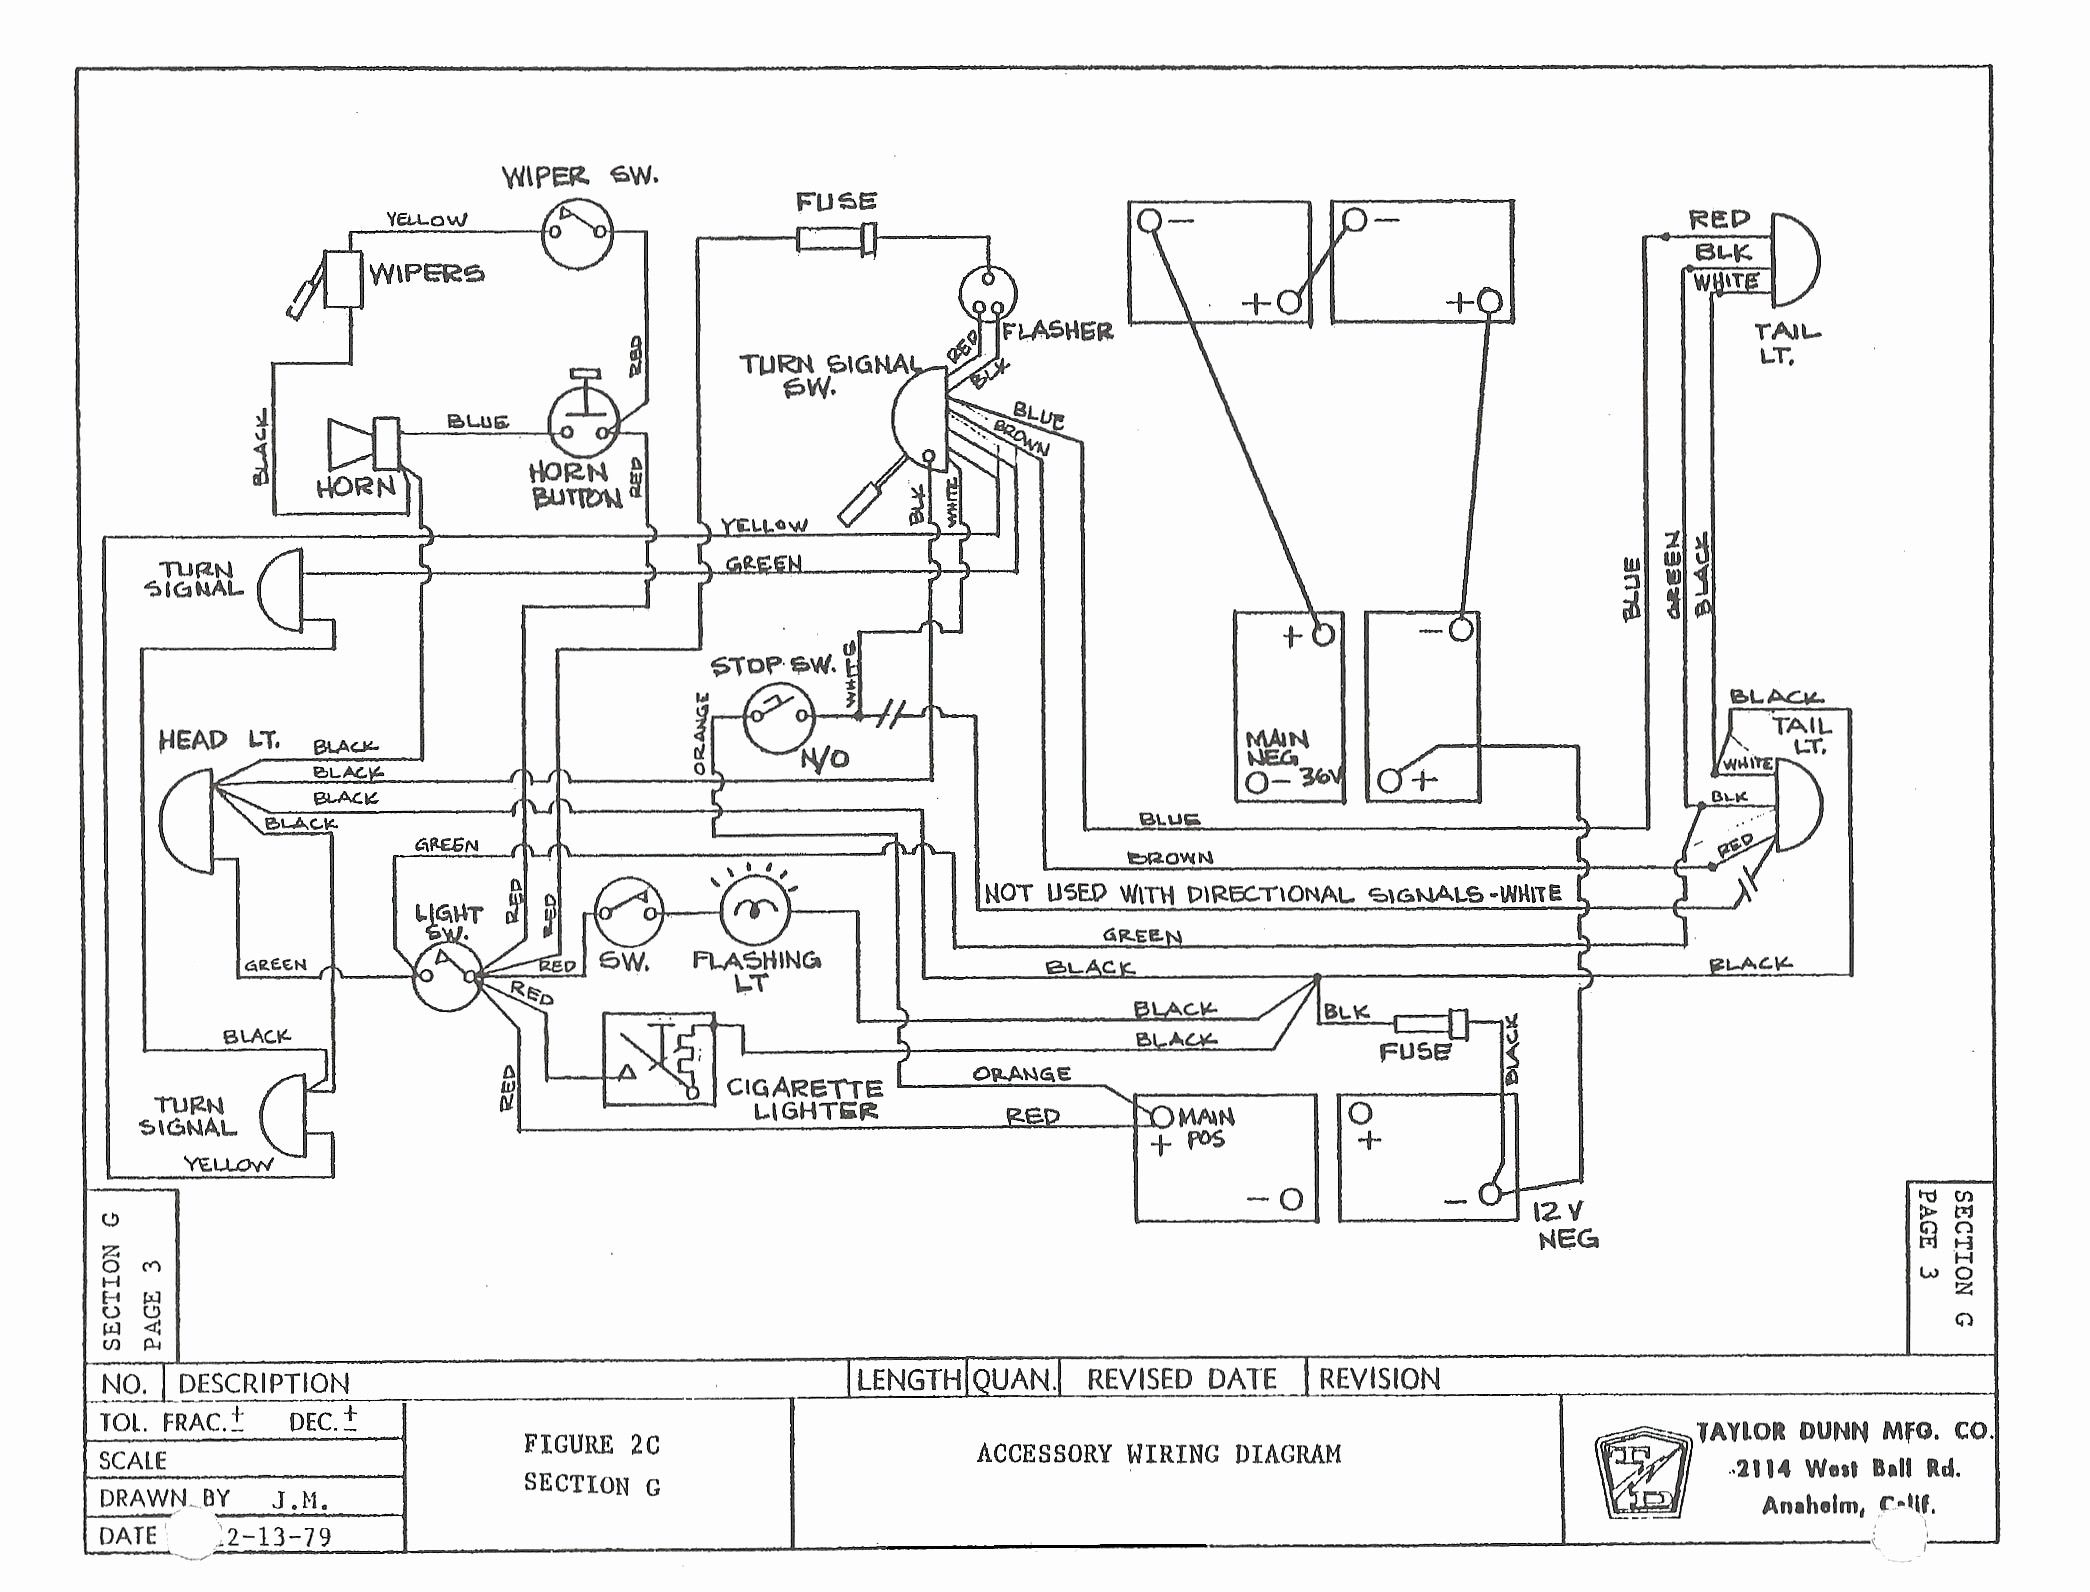 New Wiring Diagram For 2006 Club Car Precedent 48 Volt Diagram Diagramtemplate Diagramsample Ezgo Golf Cart Club Car Golf Cart Gas Golf Carts